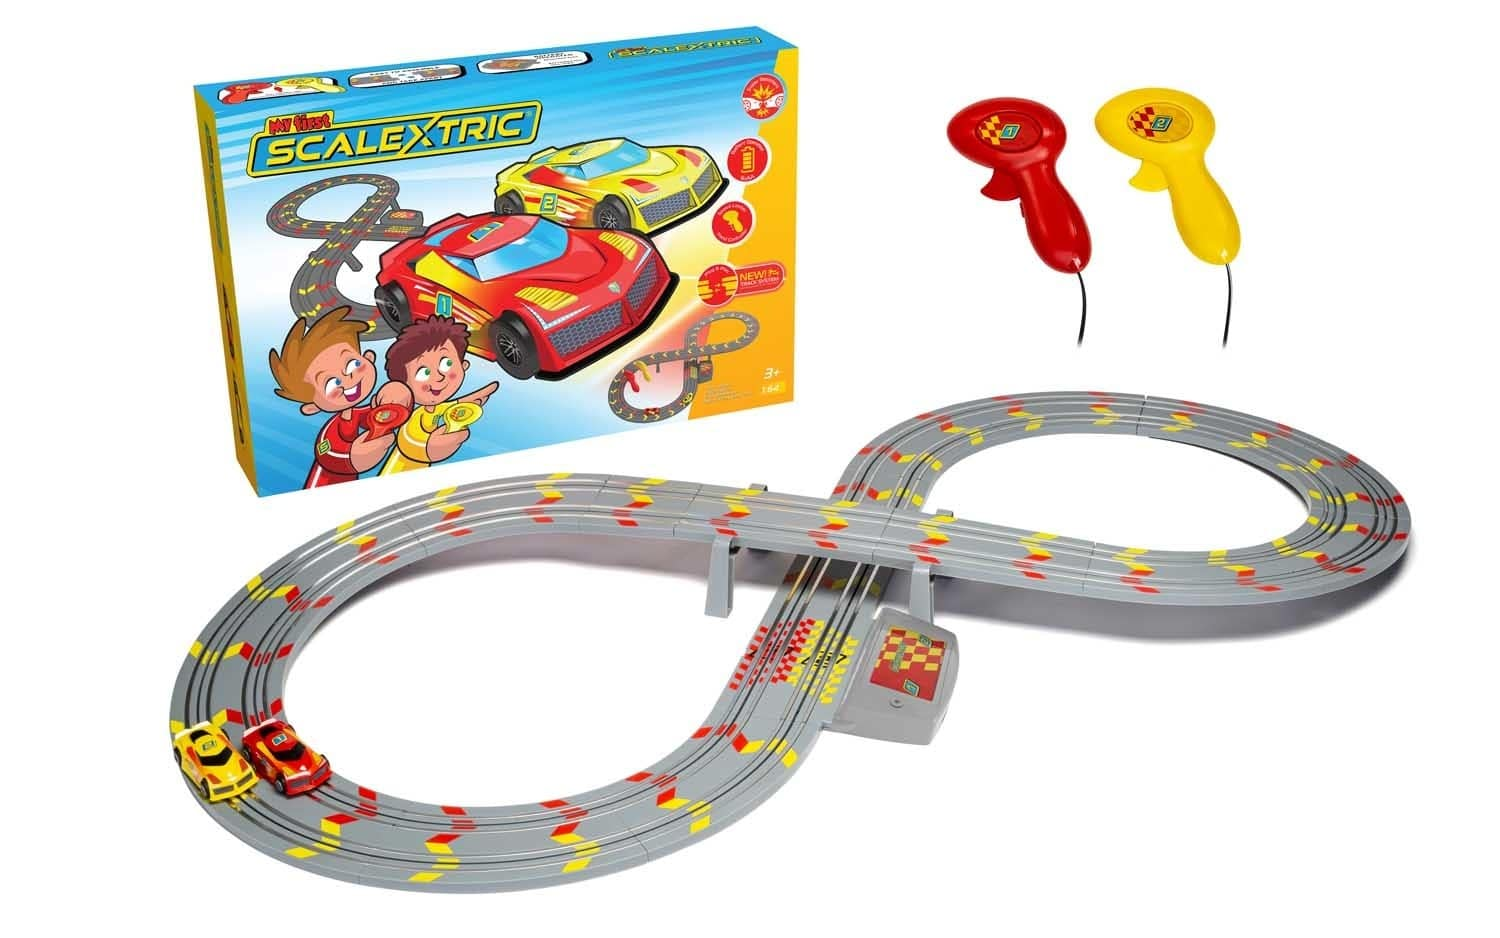 My First Scalextric.